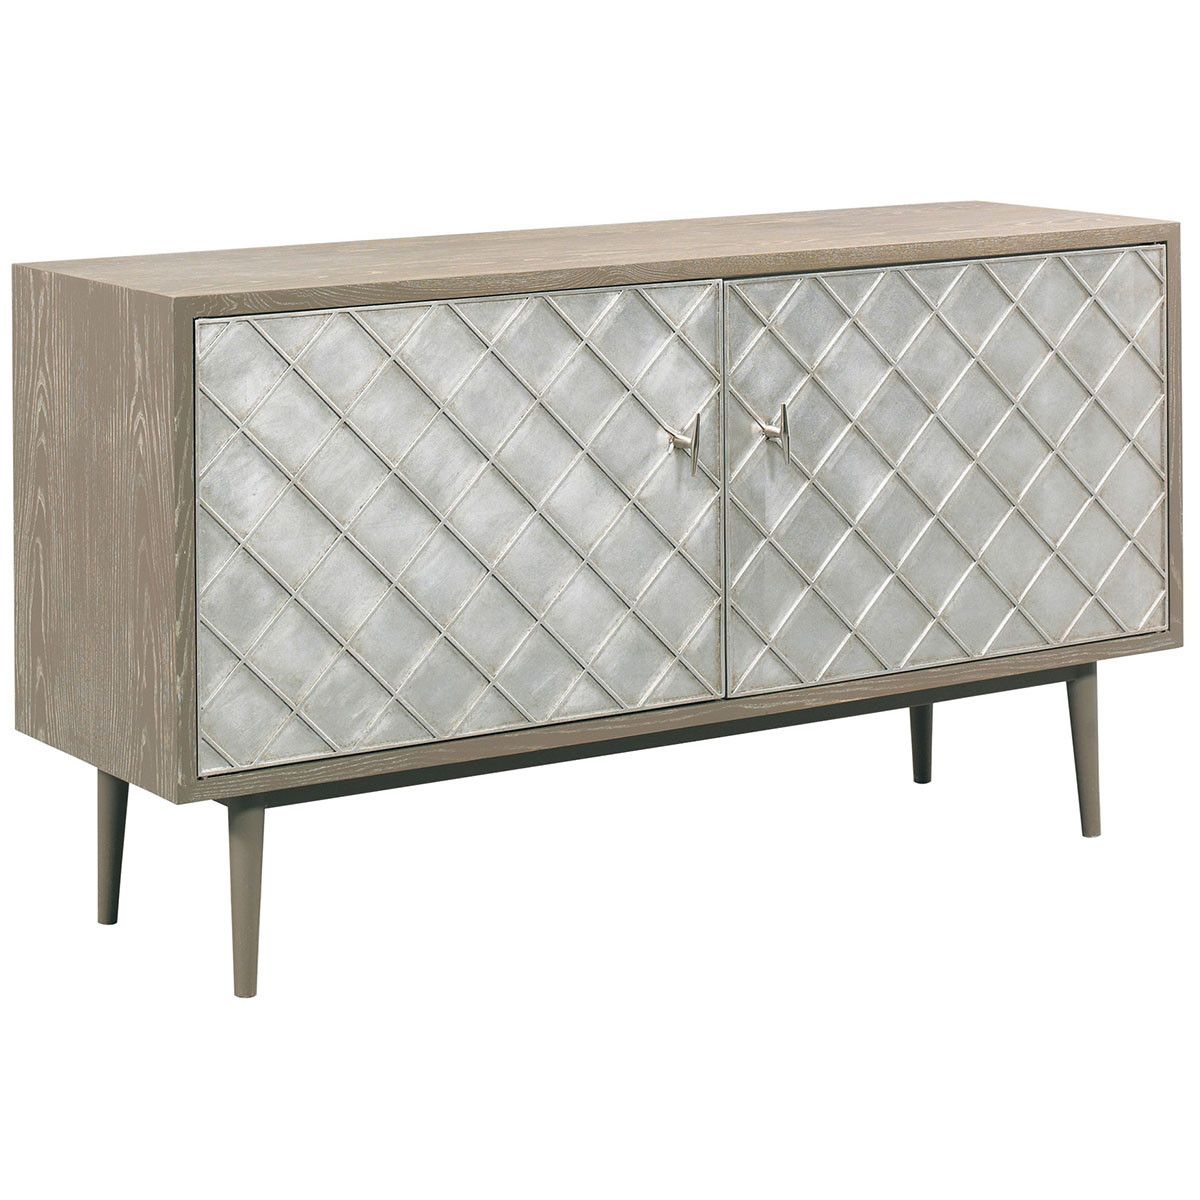 Cth Sherrill Occasional Vintage Made Modern Franco Media Cabinet for Parsons Travertine Top & Stainless Steel Base 48X16 Console Tables (Image 13 of 30)